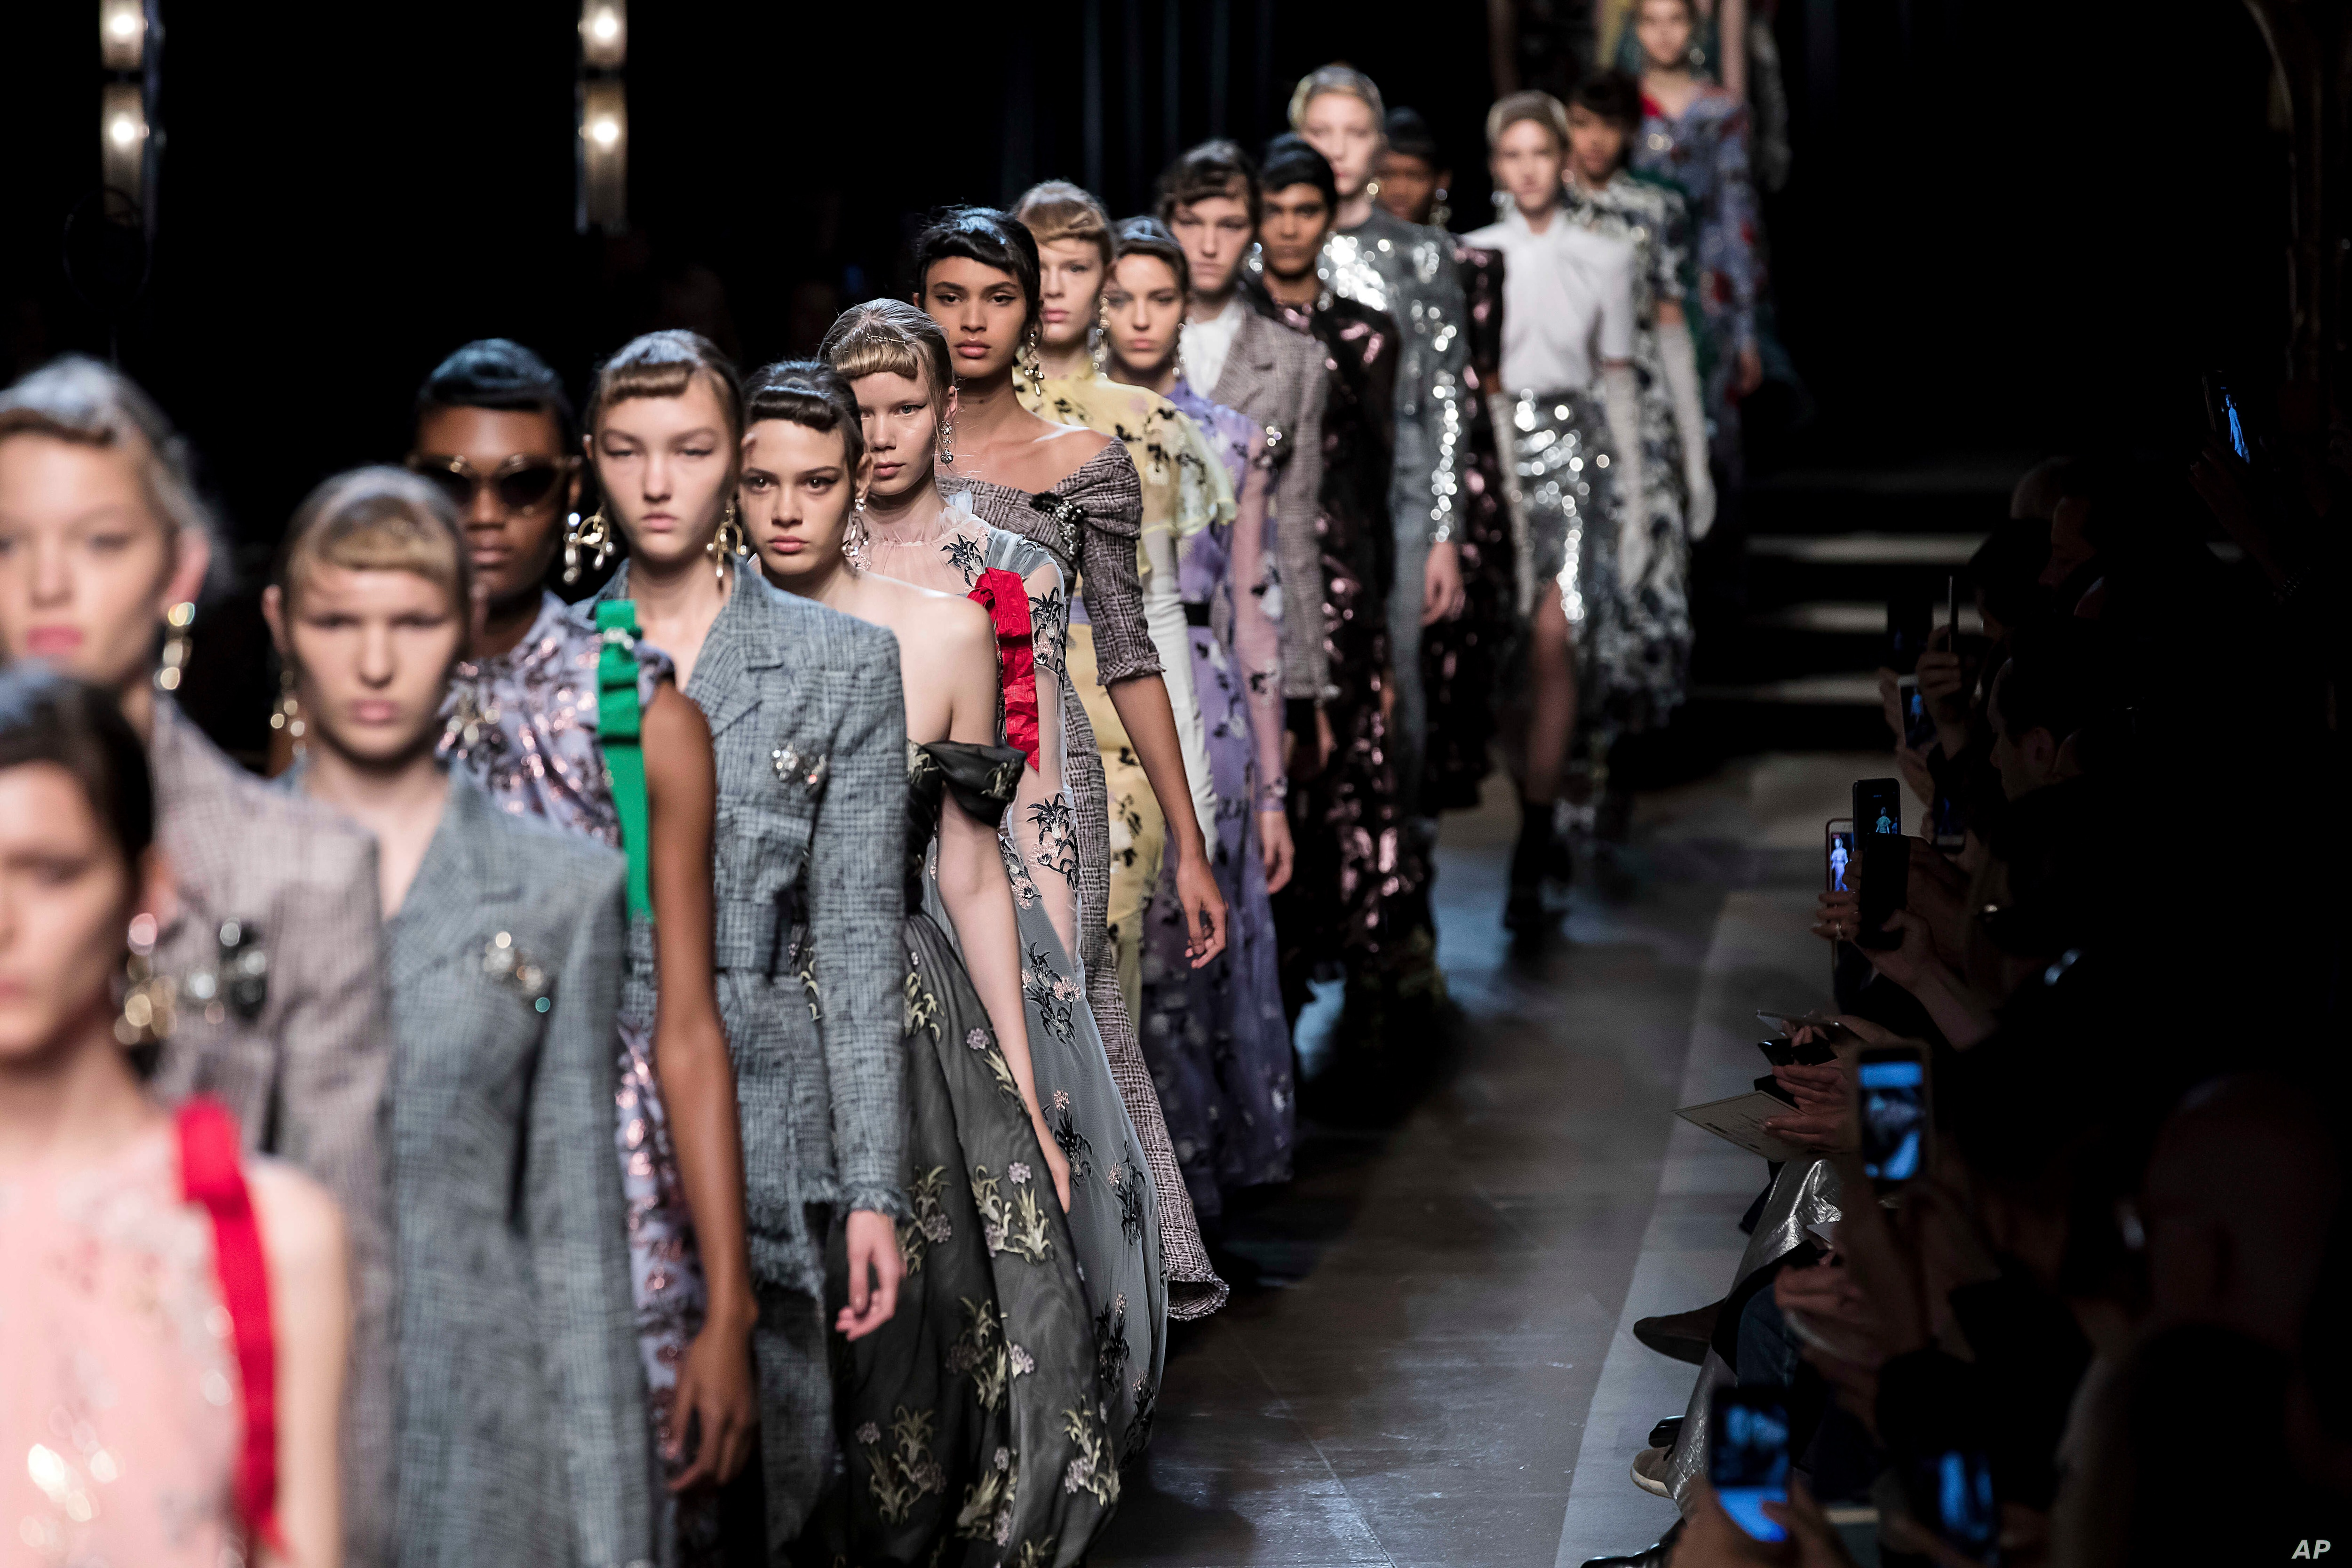 Erdem Sparkles With Glamour In London Fashion Week Catwalk Voice Of America English